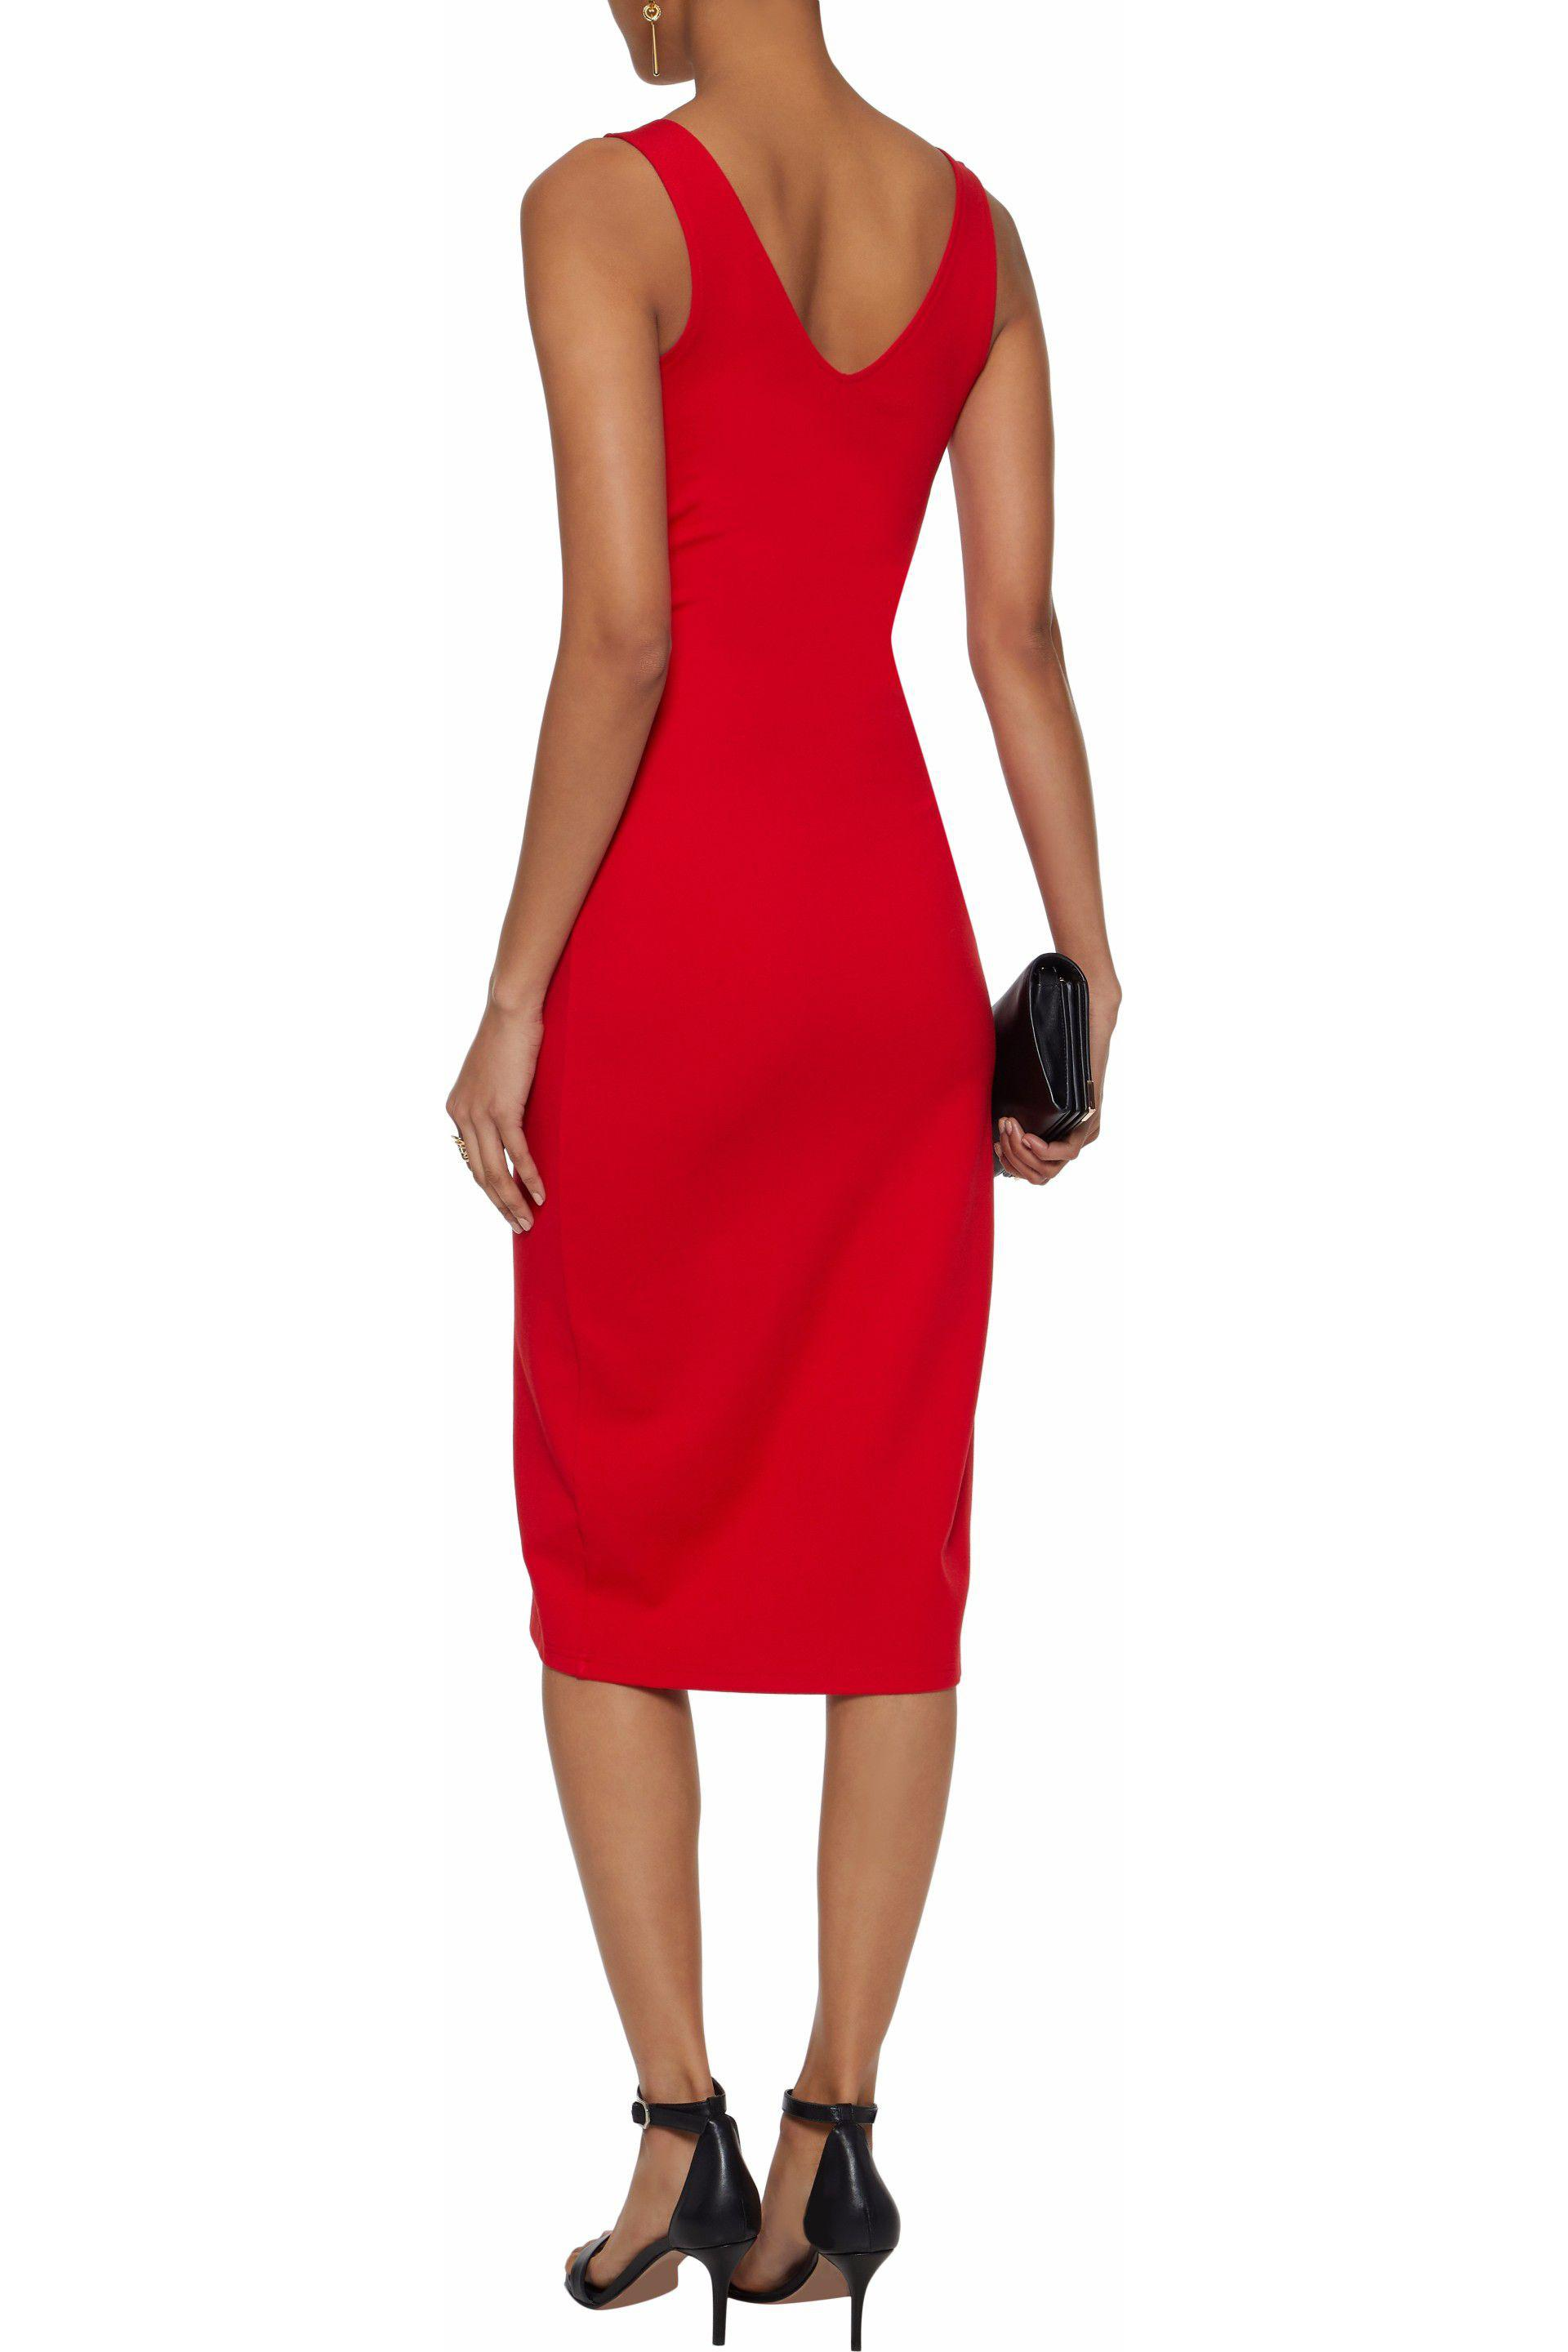 W118 By Walter Baker Woman One-shoulder Paneled Ribbed-knit Mini Dress Red Size L W118 by Walter Baker W2FrM